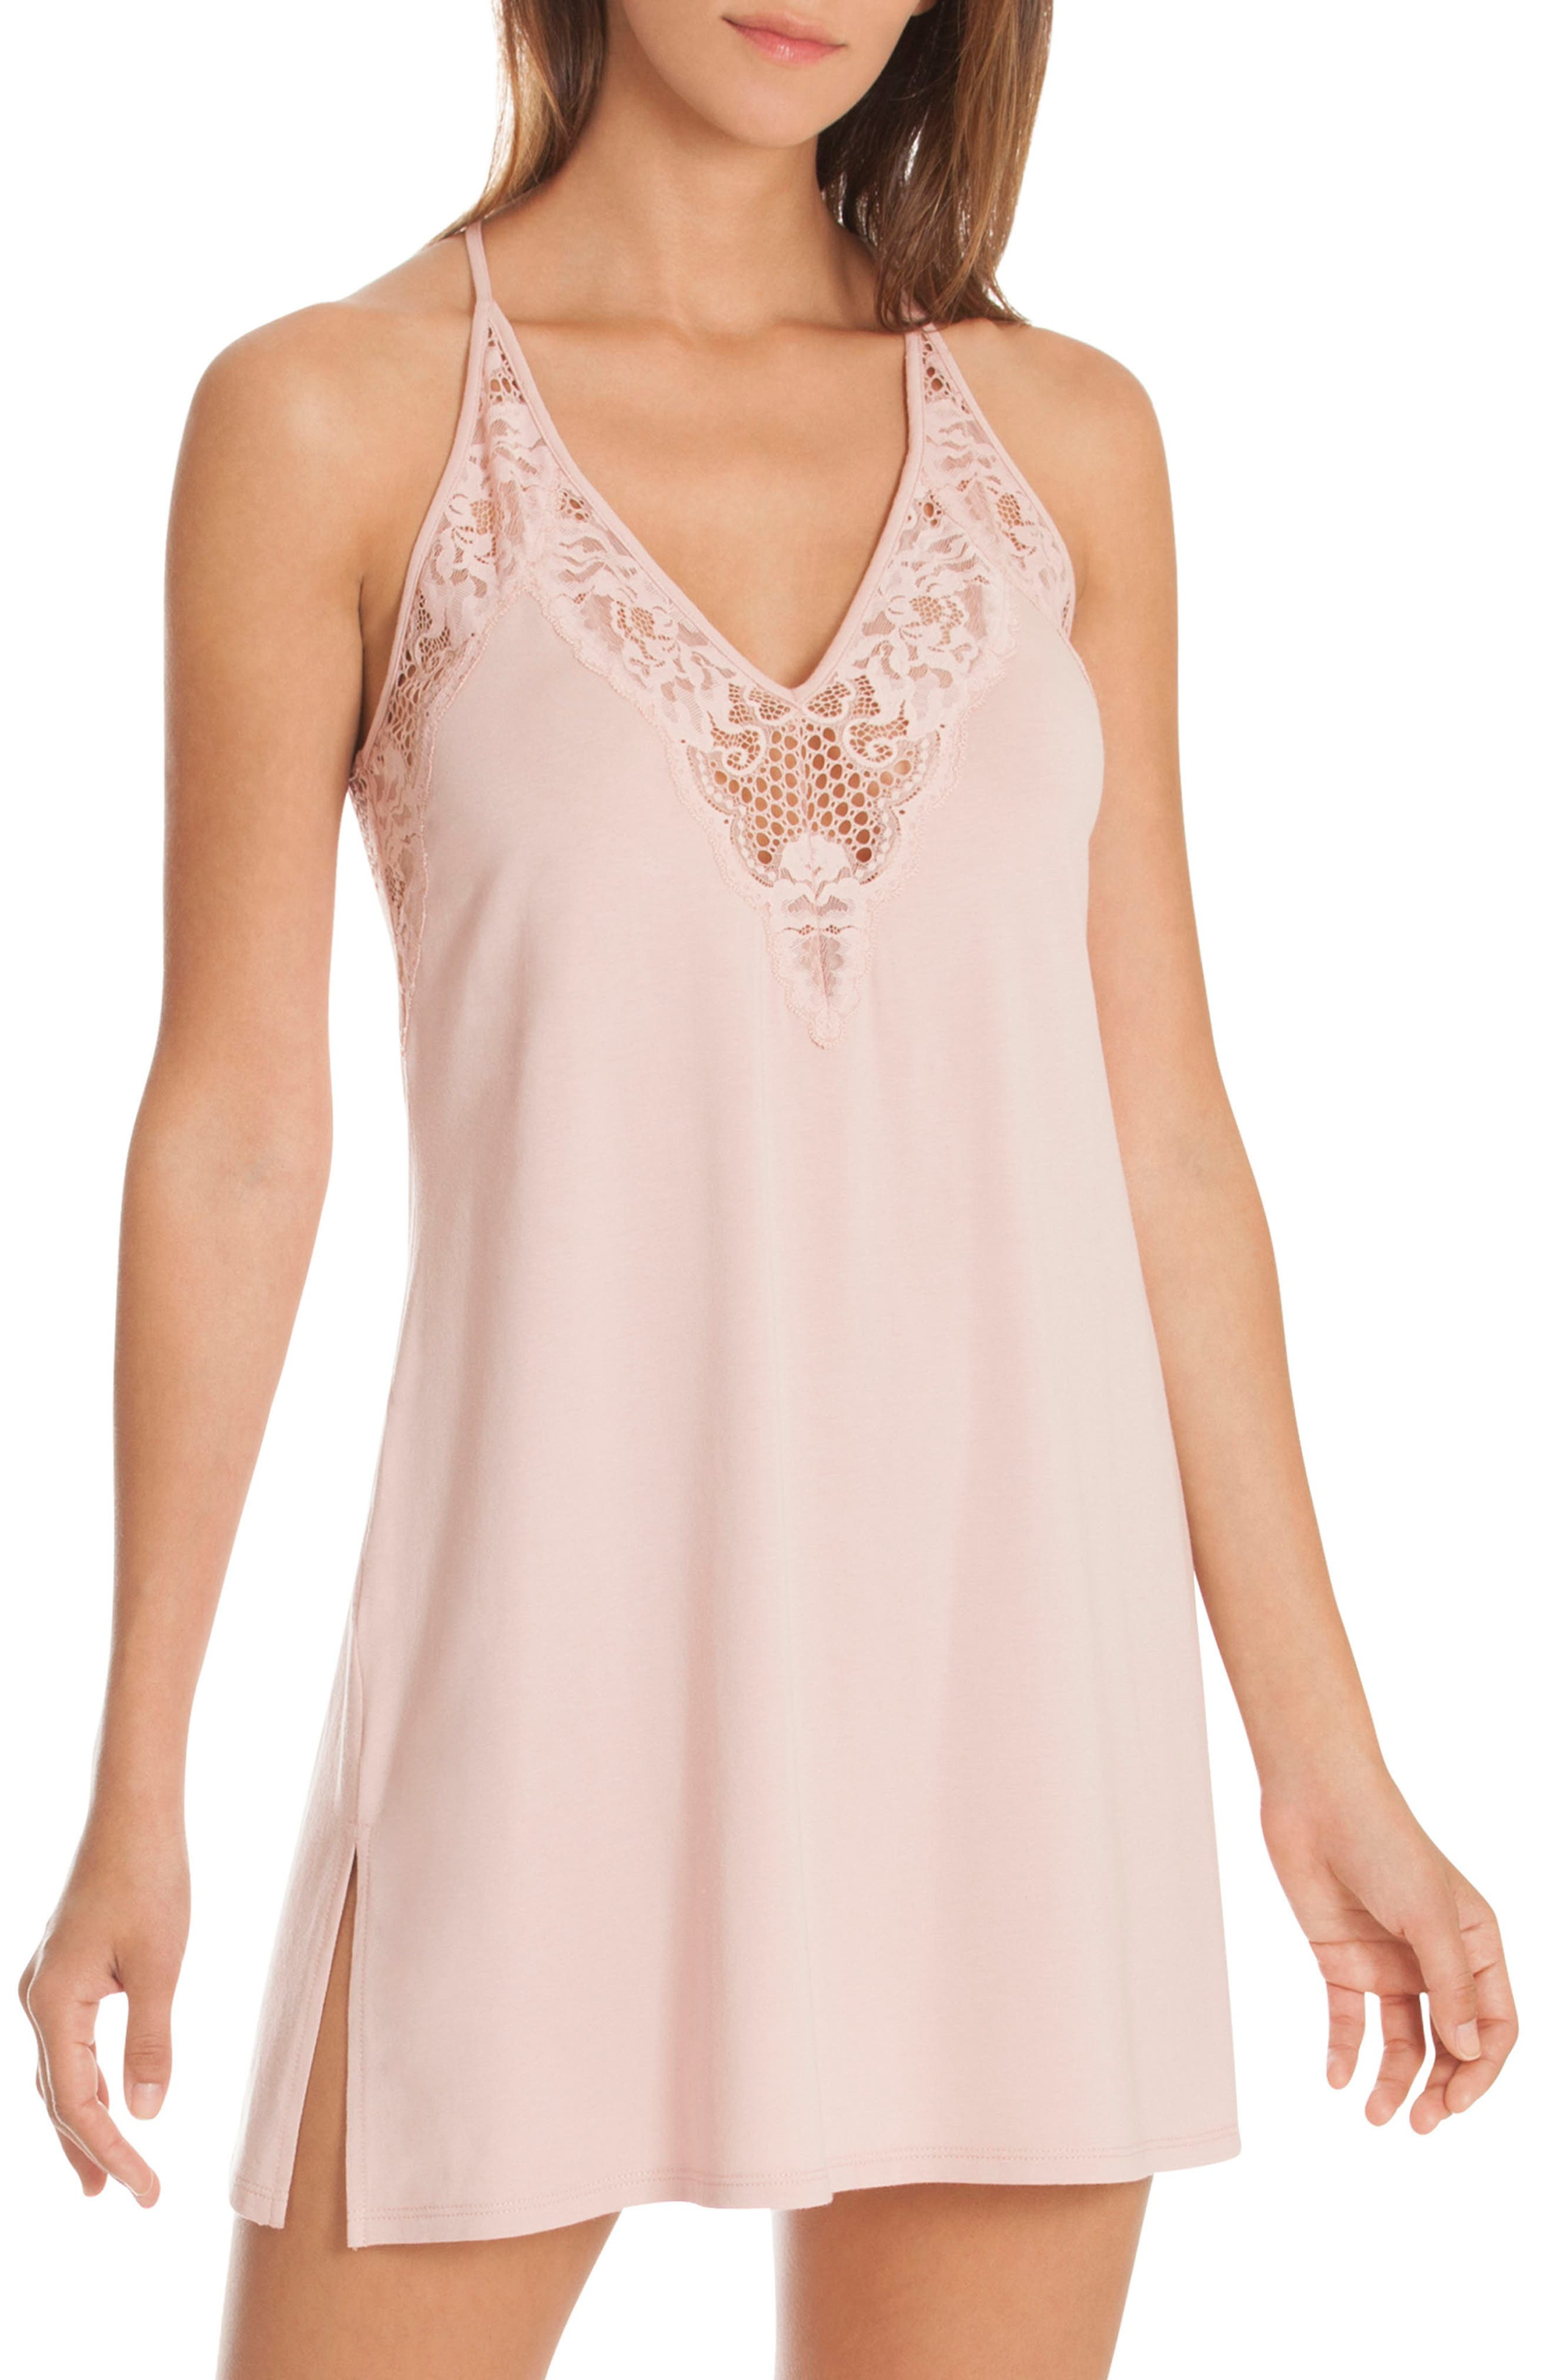 IN BLOOM BY JONQUIL BREATHE CHEMISE